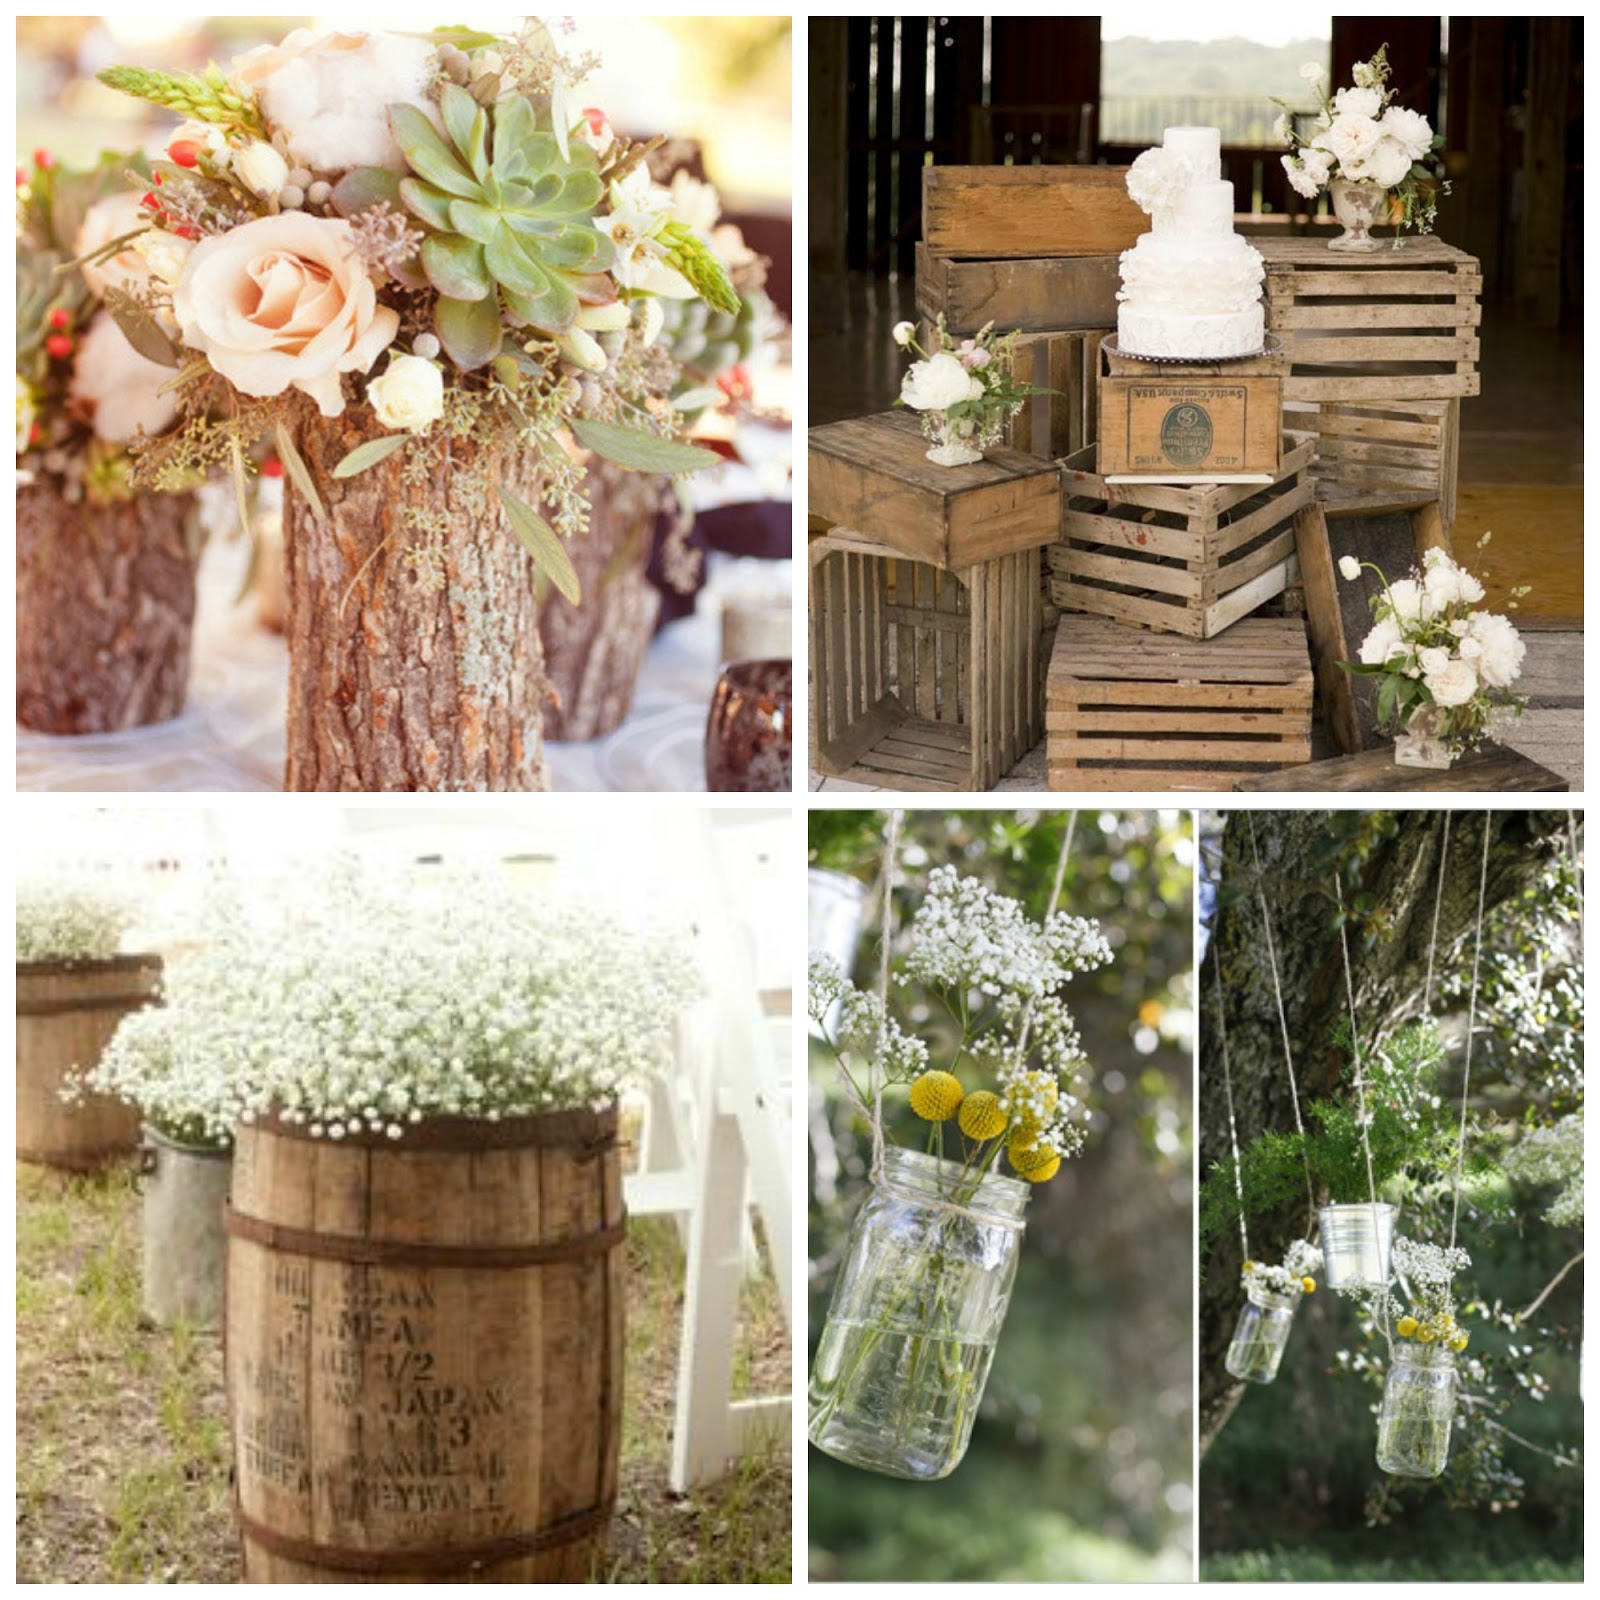 Una boda r stica loveventos - Ideas para decoracion rustica ...